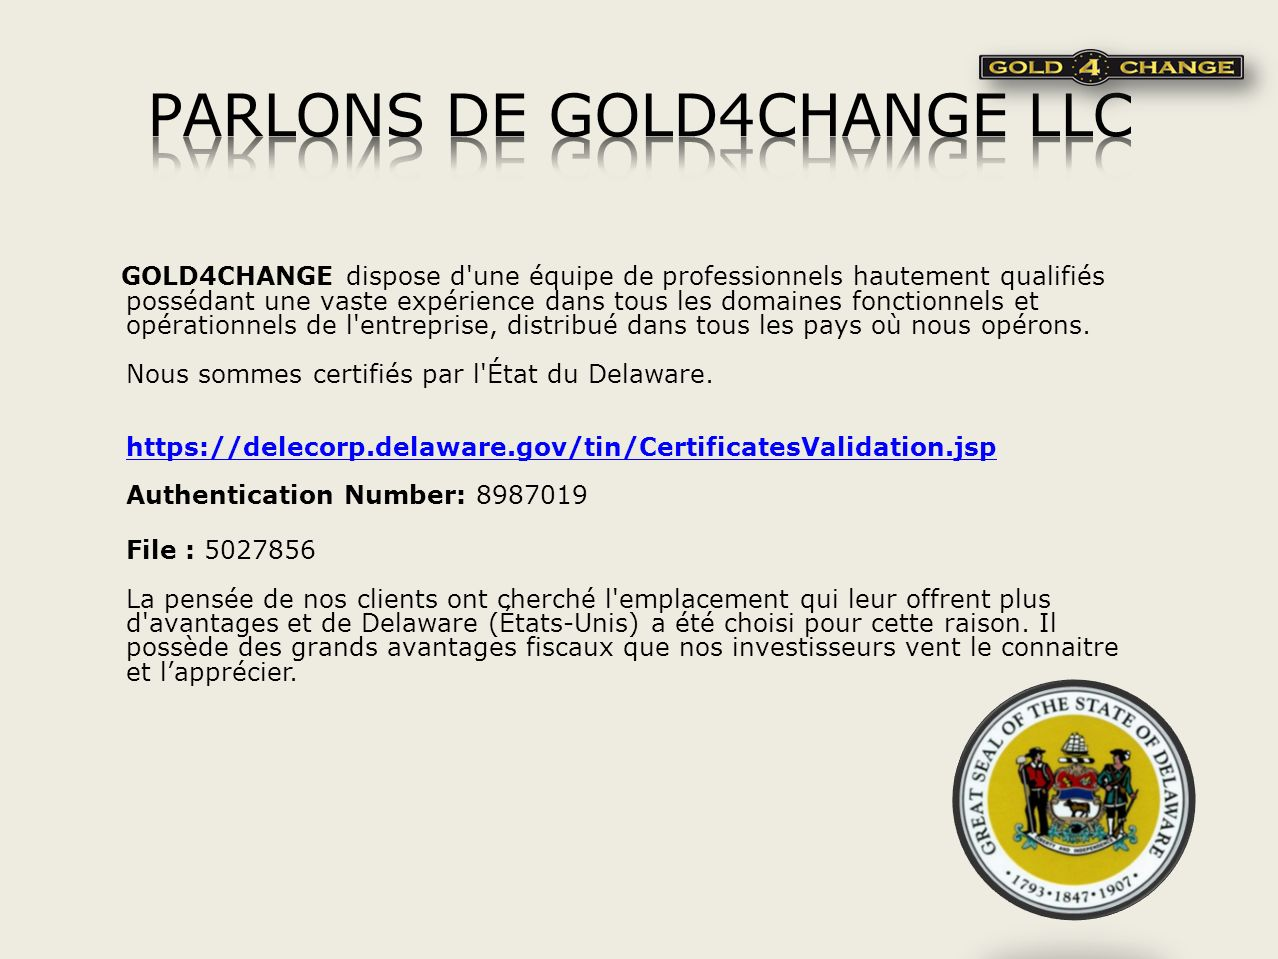 PARLONS DE GOLD4CHANGE LLC